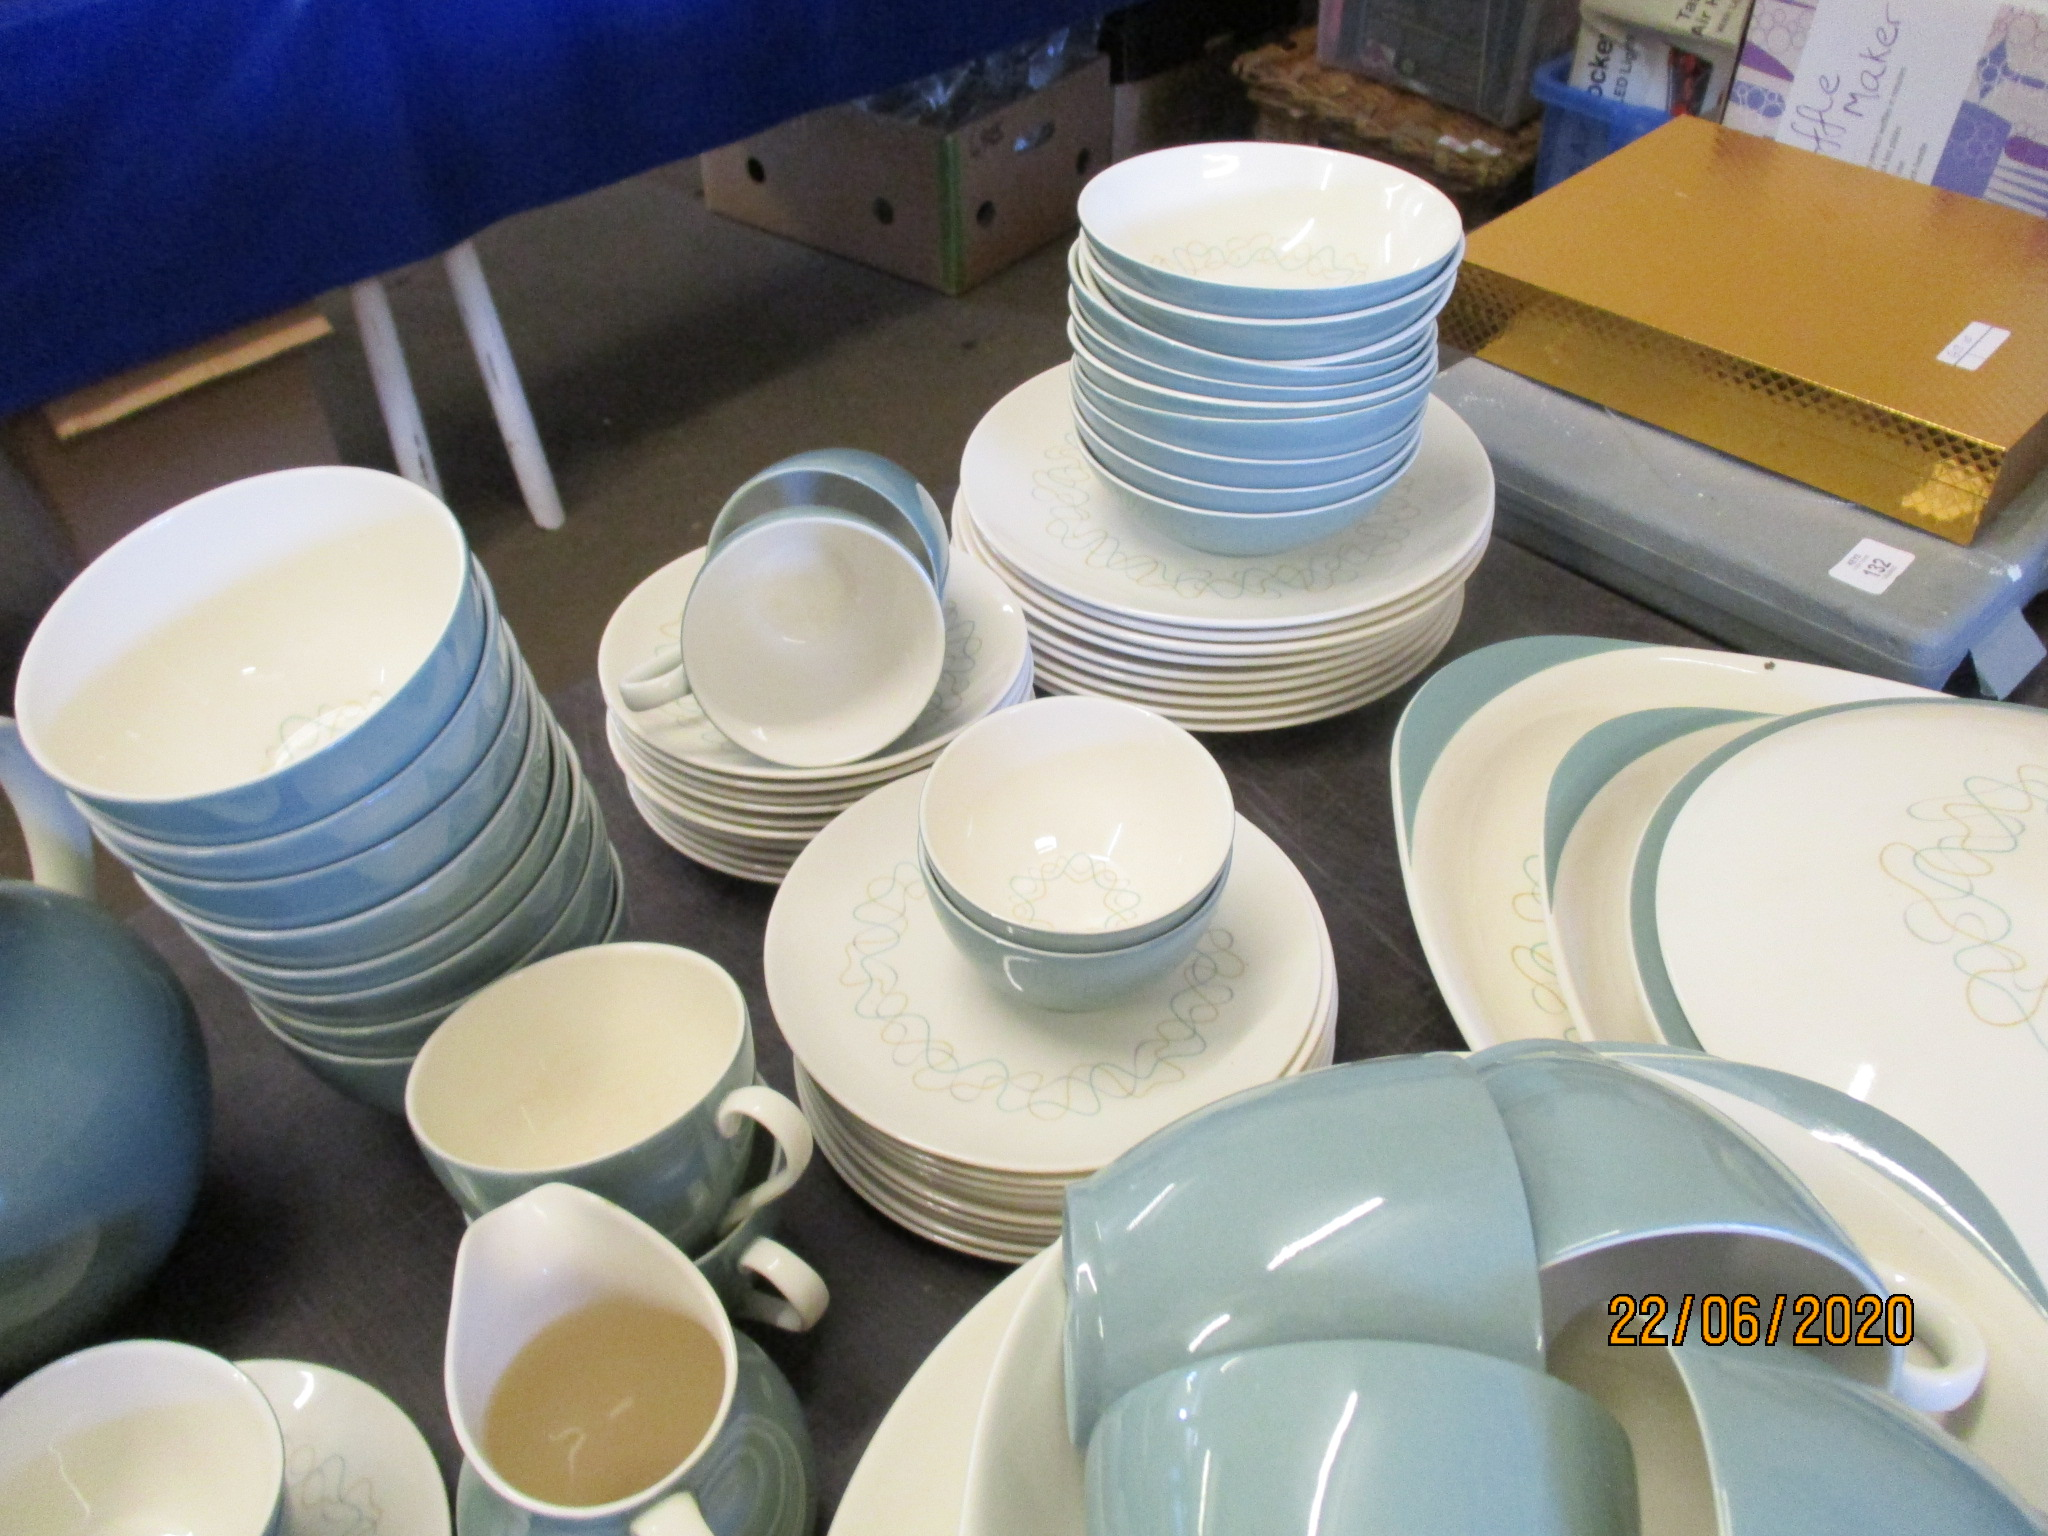 Lot 134 - GOOD QUANTITY OF ROYAL DOULTON TRACERY DINNER WARES INC PLATES, BOWLS, COFFEE/TEA SET, SERVING